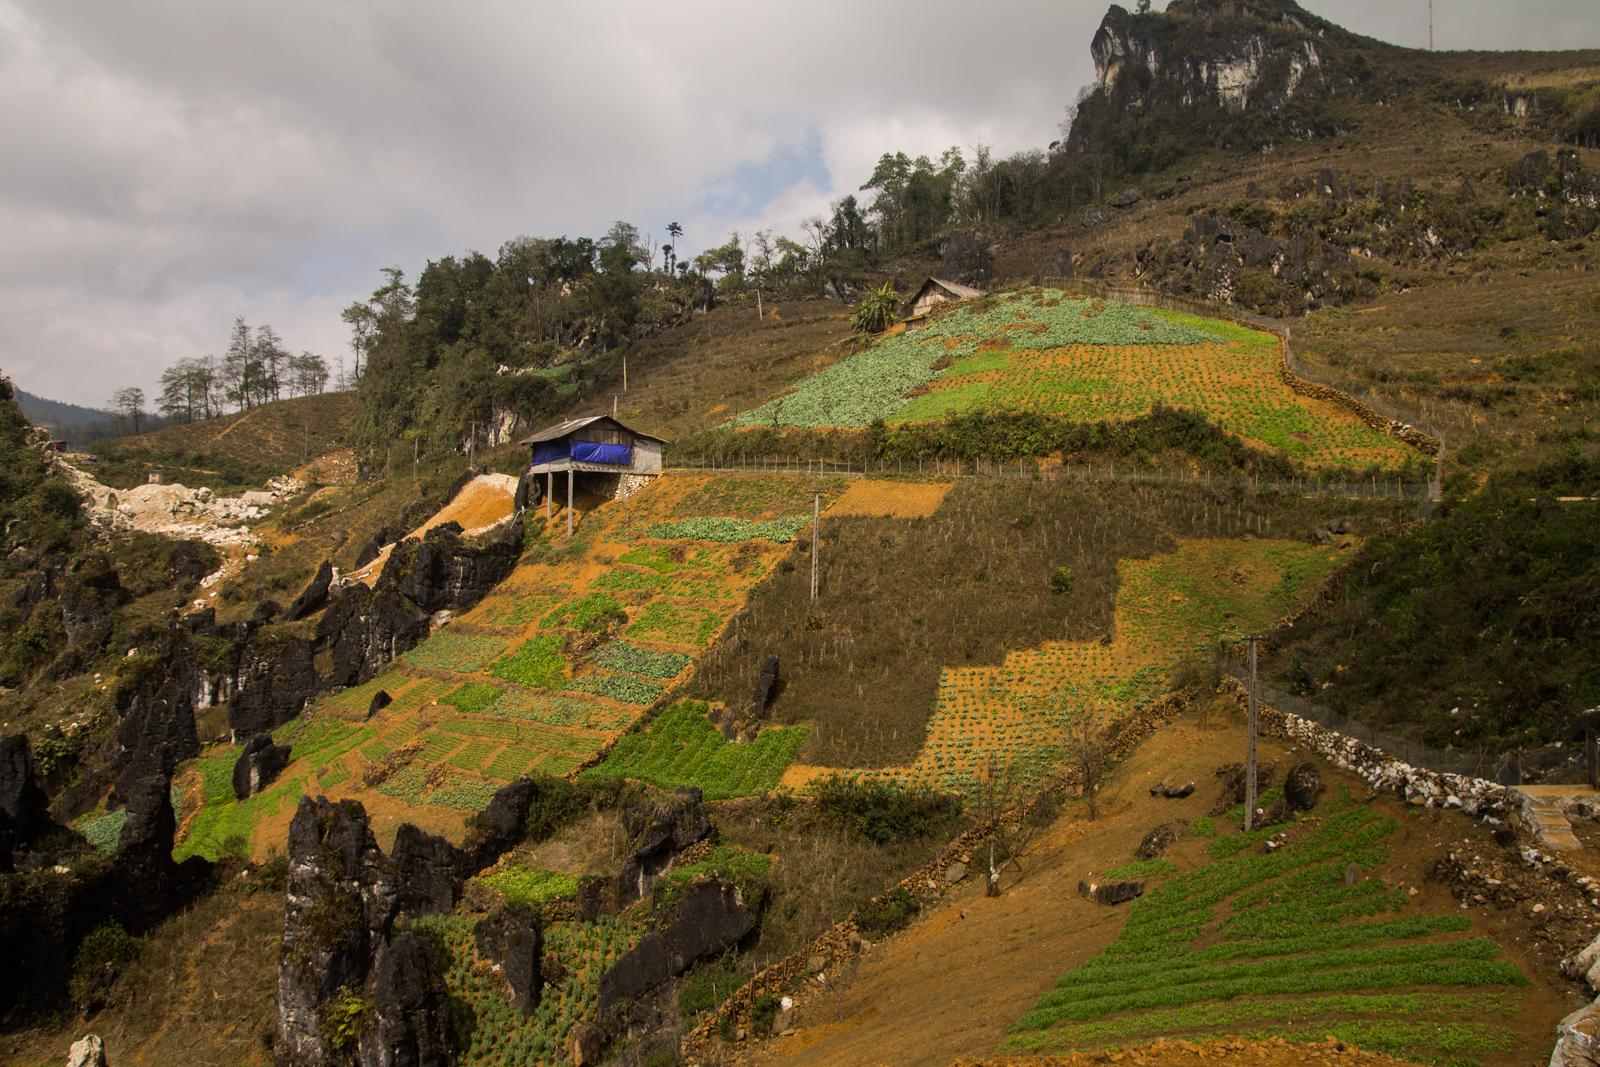 Farming in Sapa